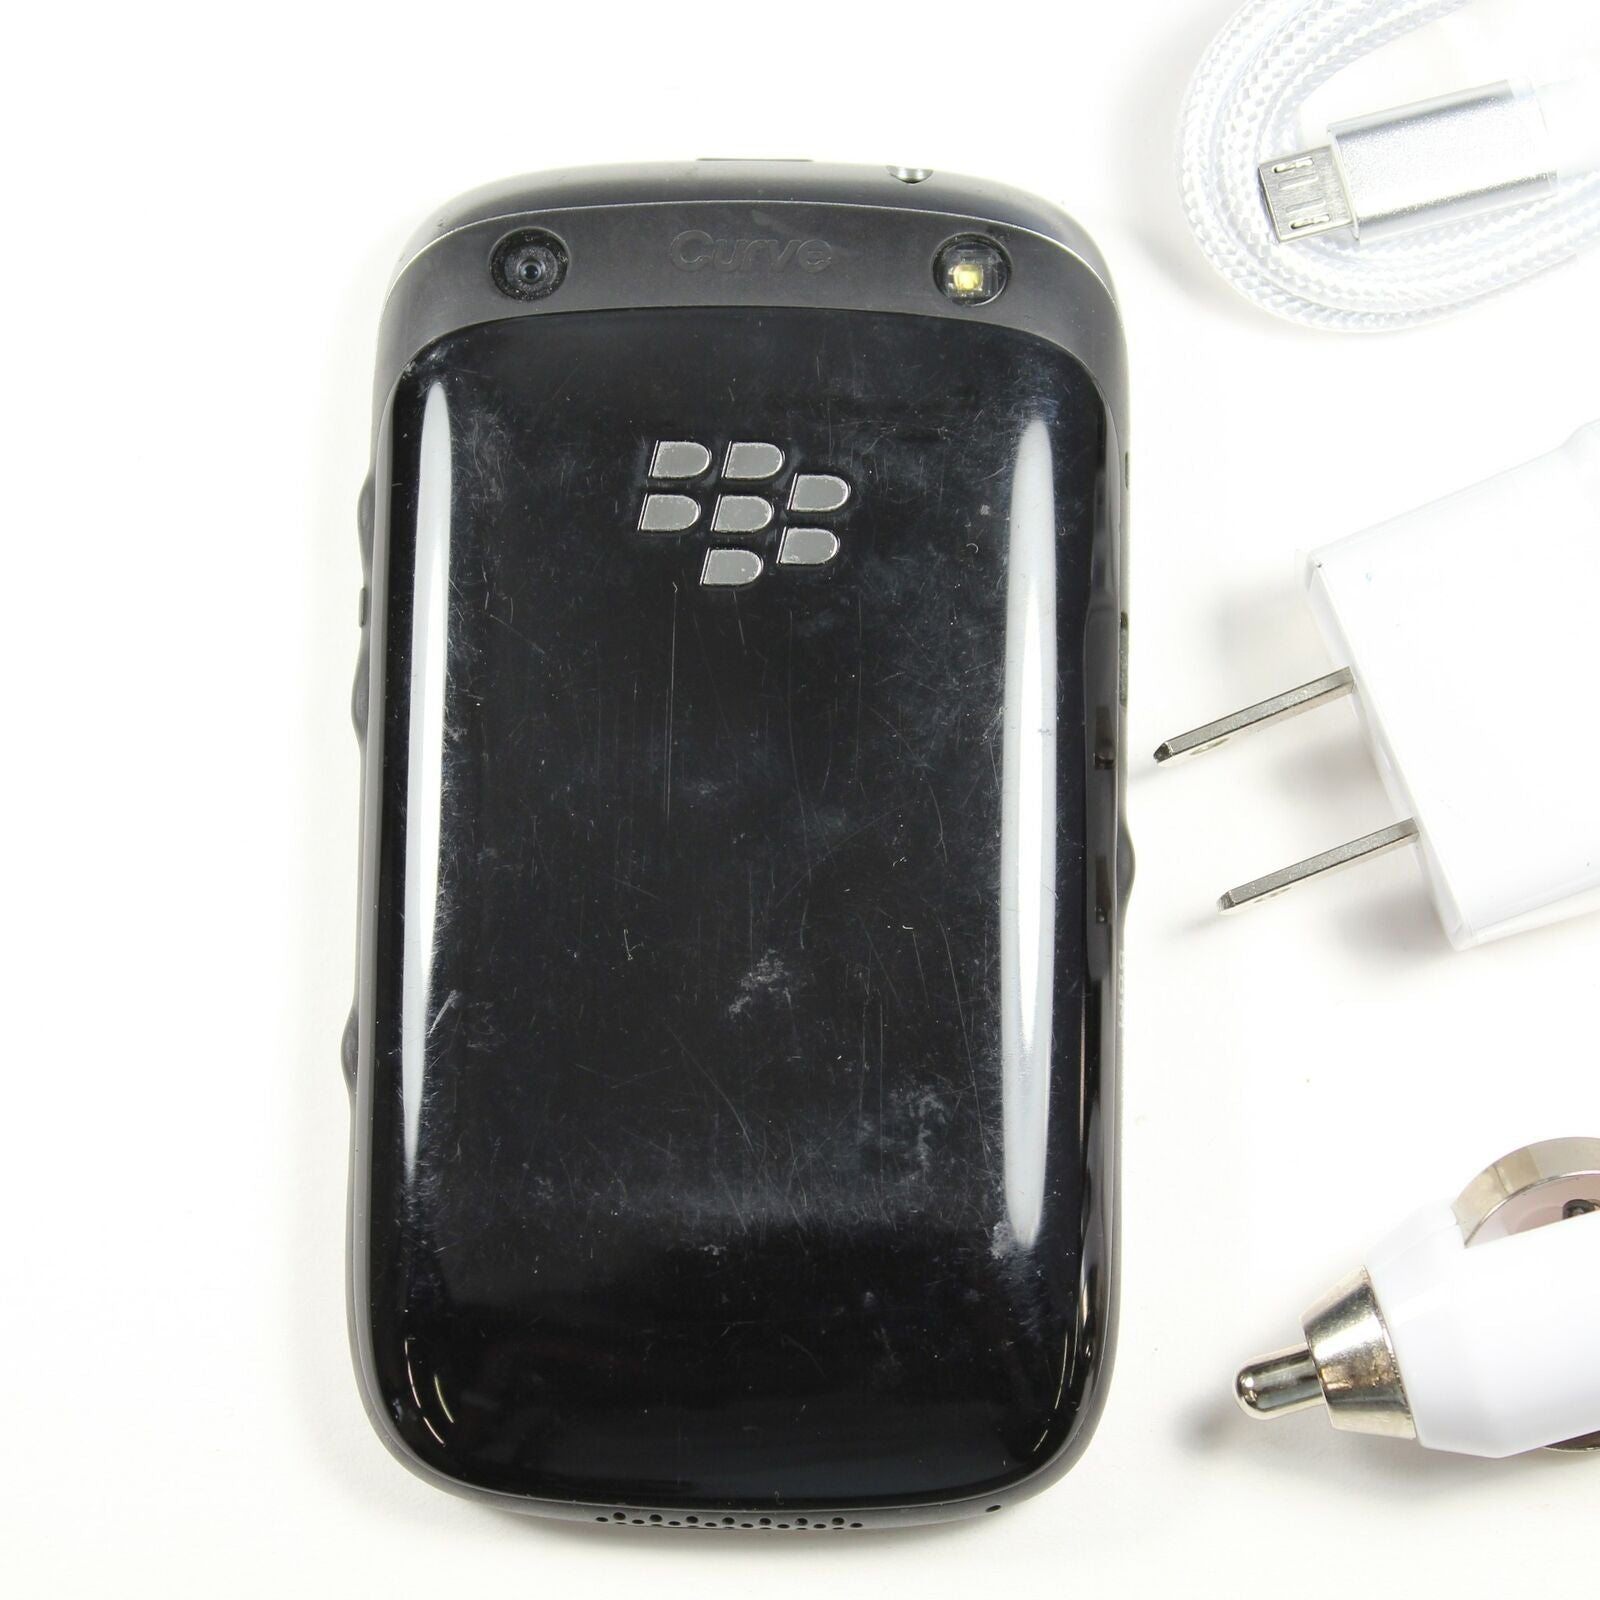 Blackberry Curve 9315 (T-Mobile) QWERTY Phone - GSM, GPS, WIFI DATA, 2MP Camera,